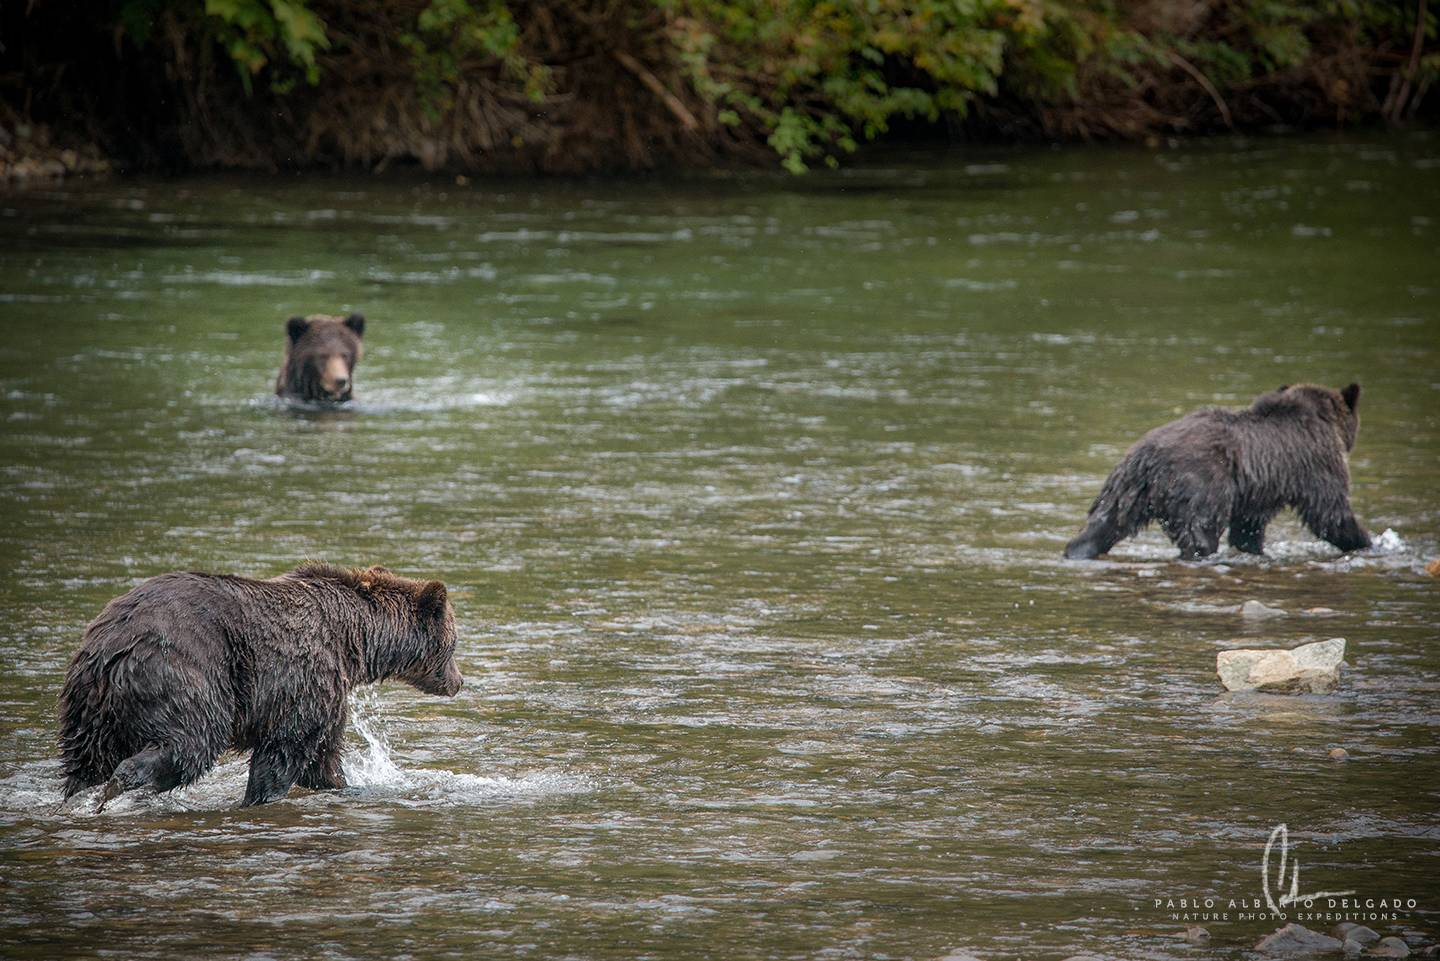 Grizzly familly in Canada river